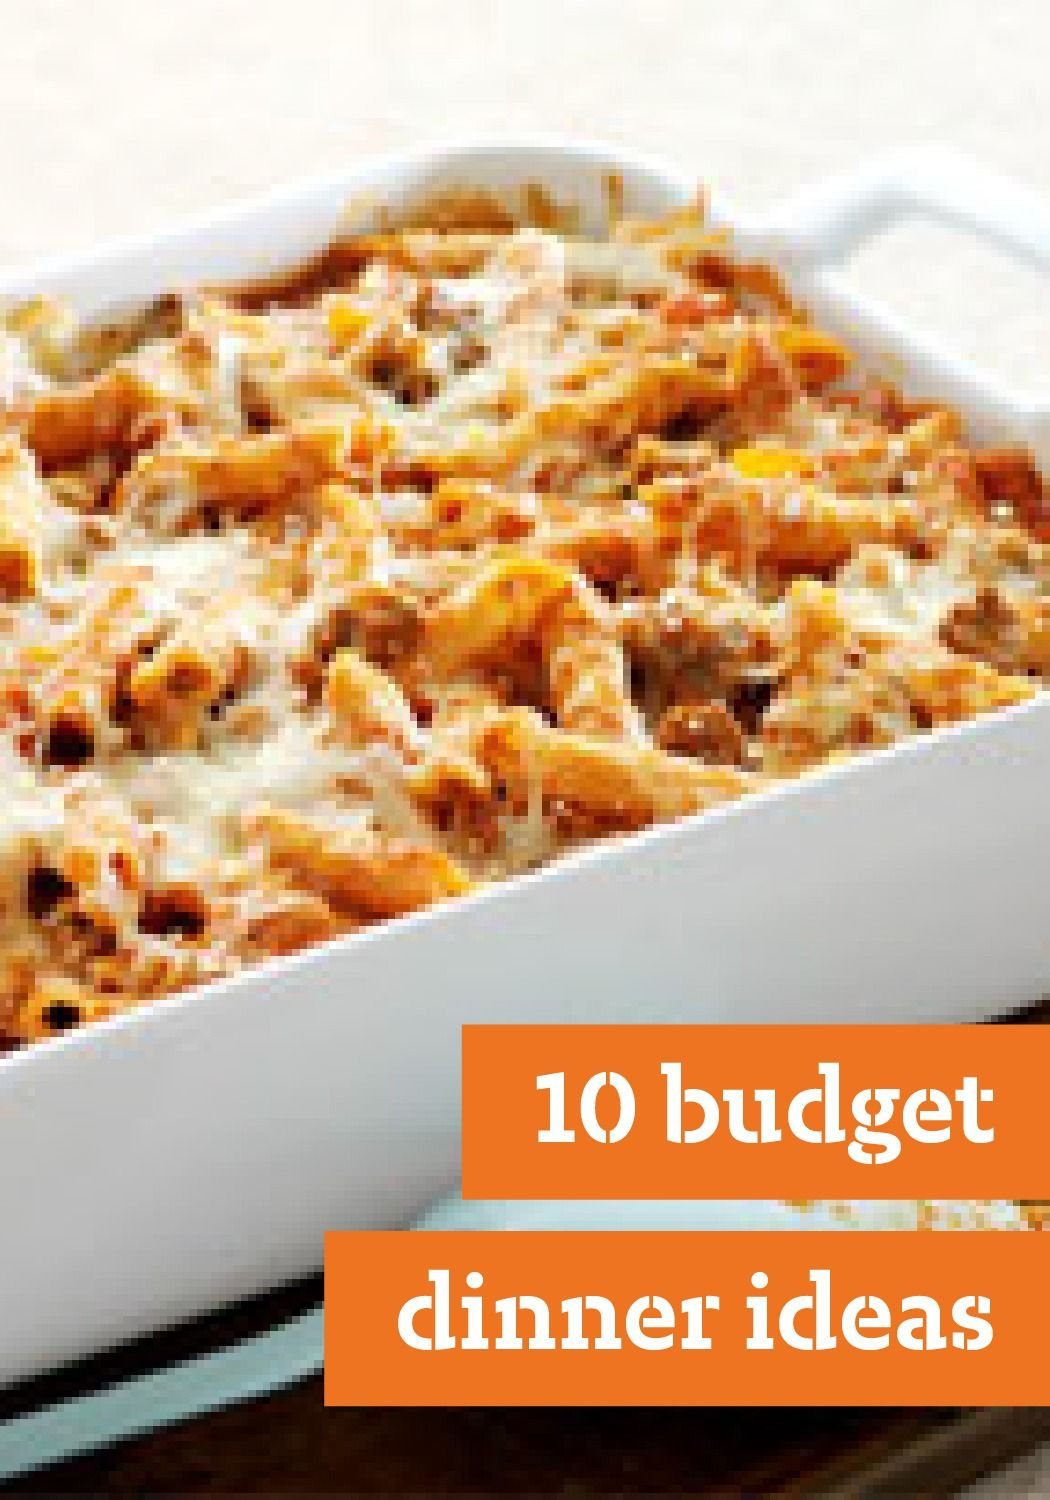 10 budget dinner ideas our wide collection of budget dinner 10 budget dinner ideas our wide collection of budget dinner recipes help you create delicious meal ideas by being easy on your wallet forumfinder Gallery